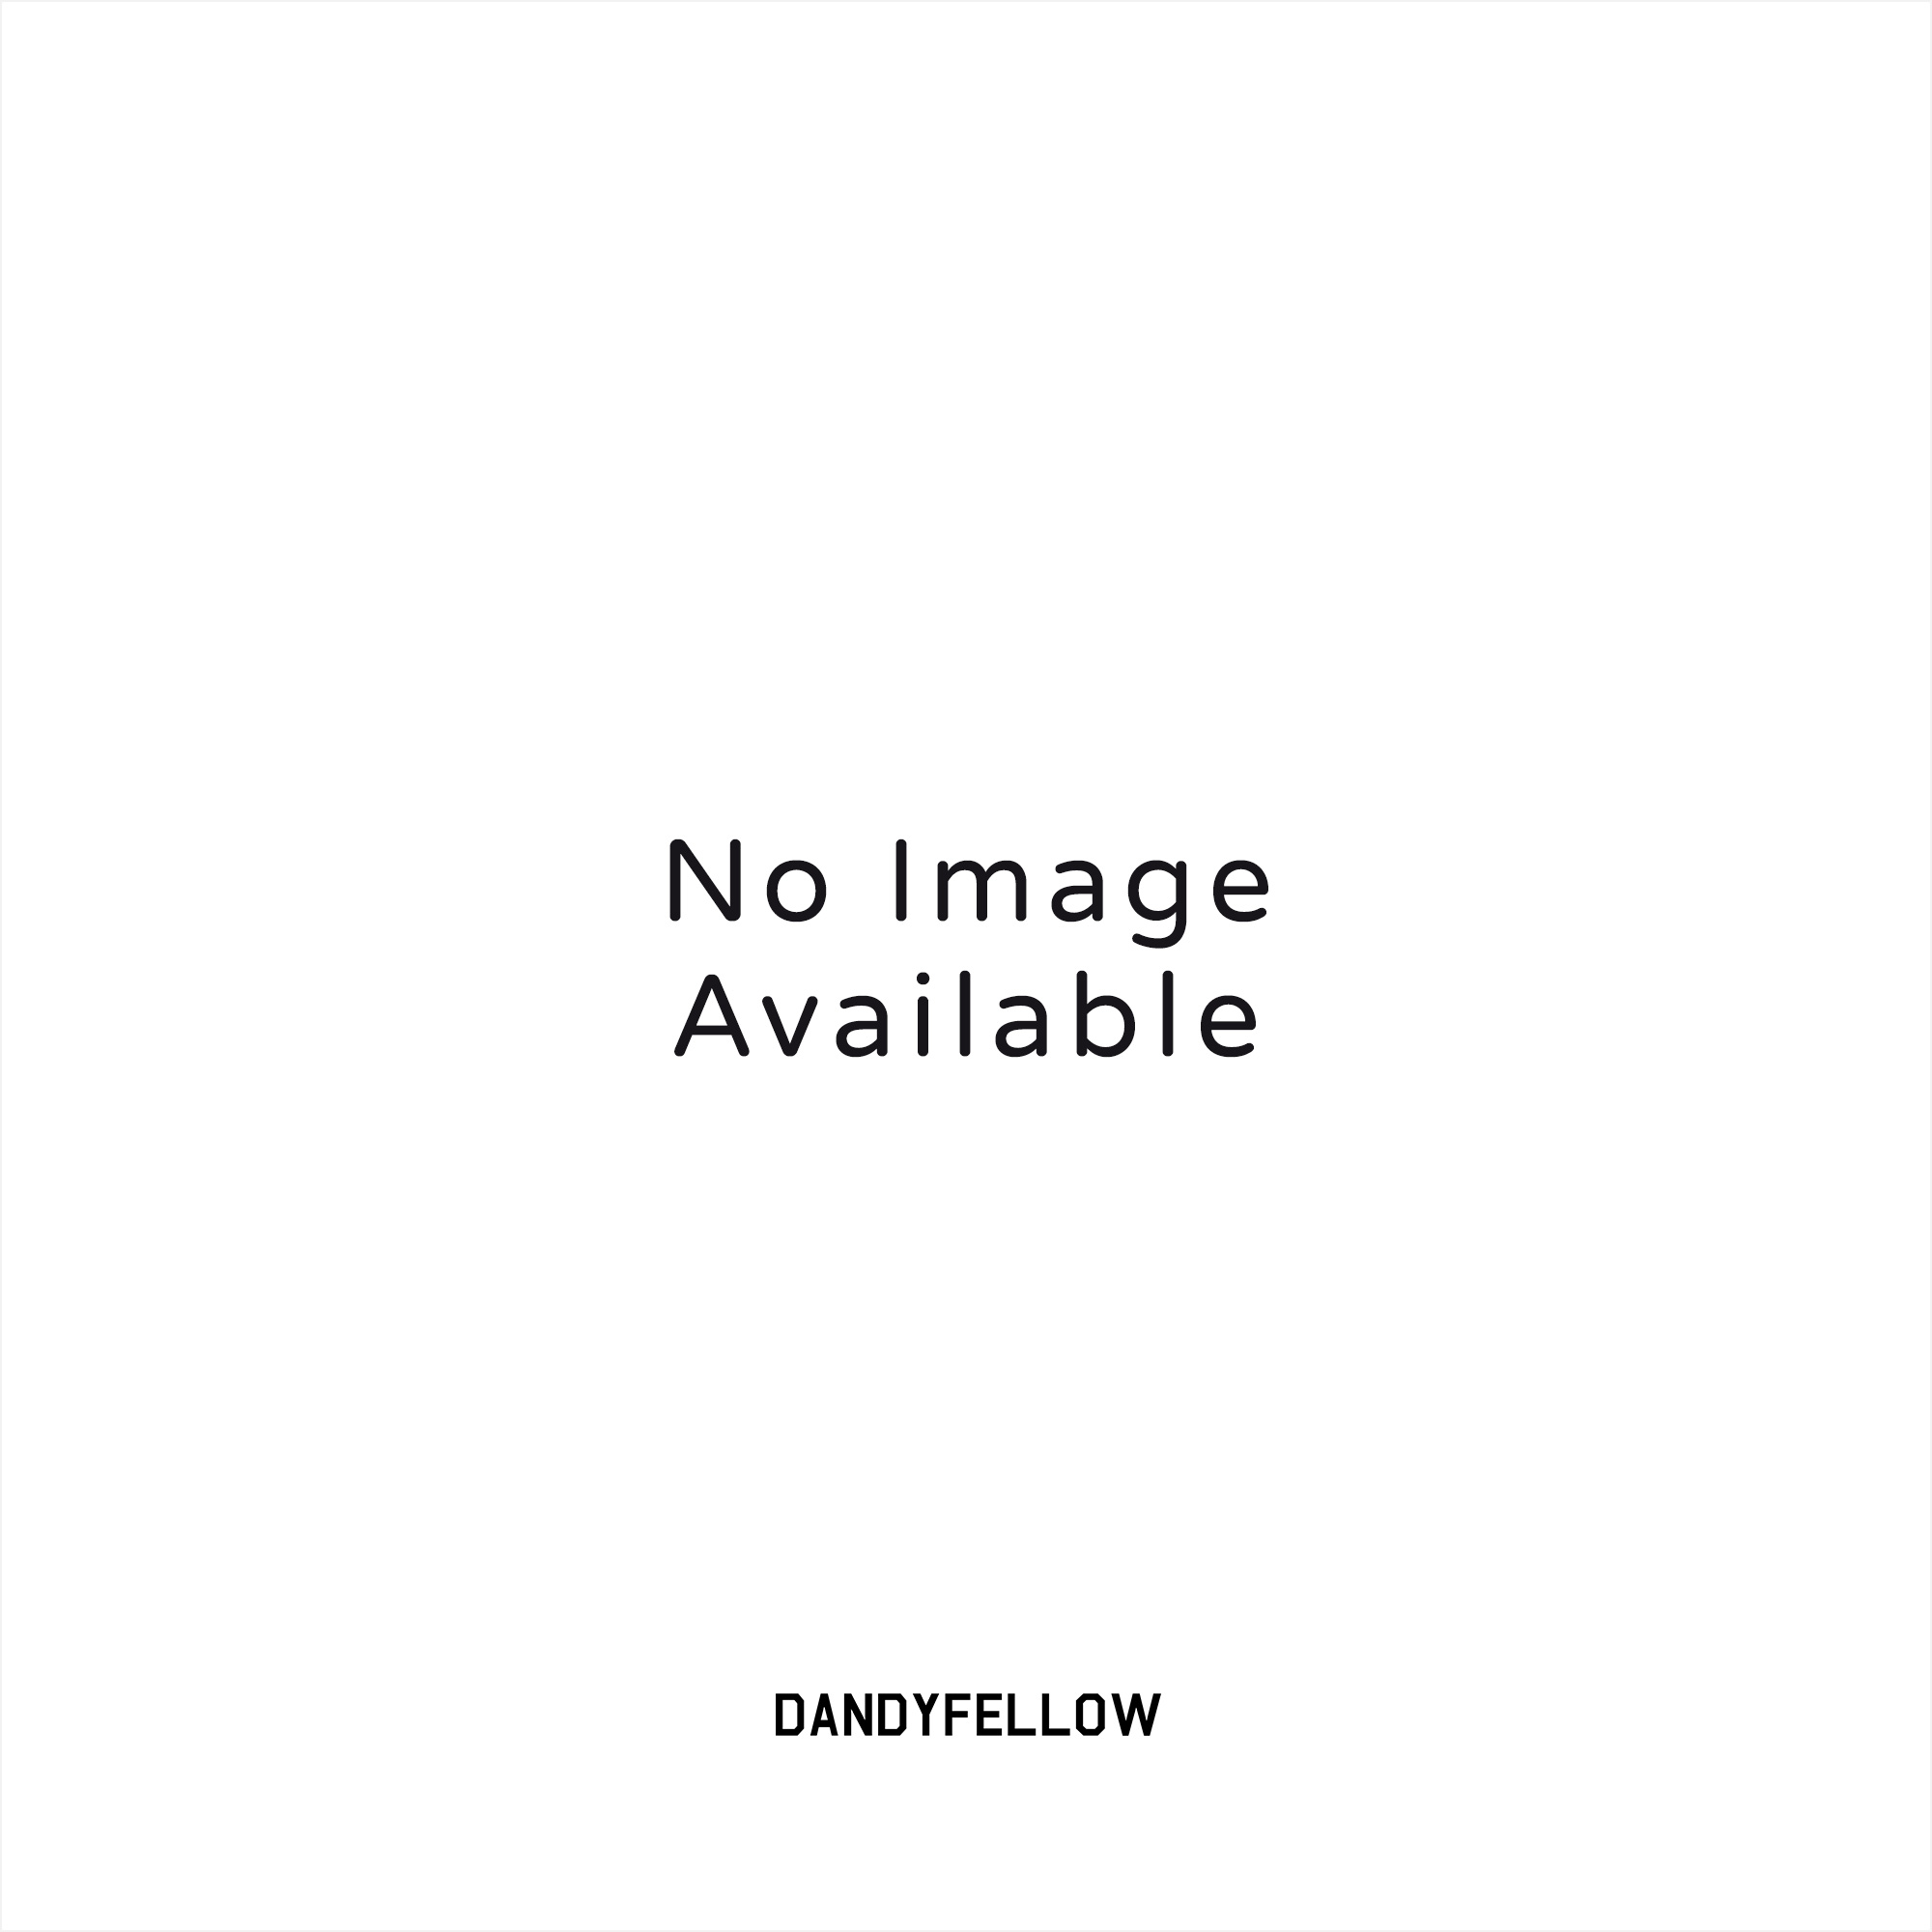 8b459dd9174ac Nike Air More Uptempo  96 Italy QS (Red   White) at Dandy Fellow